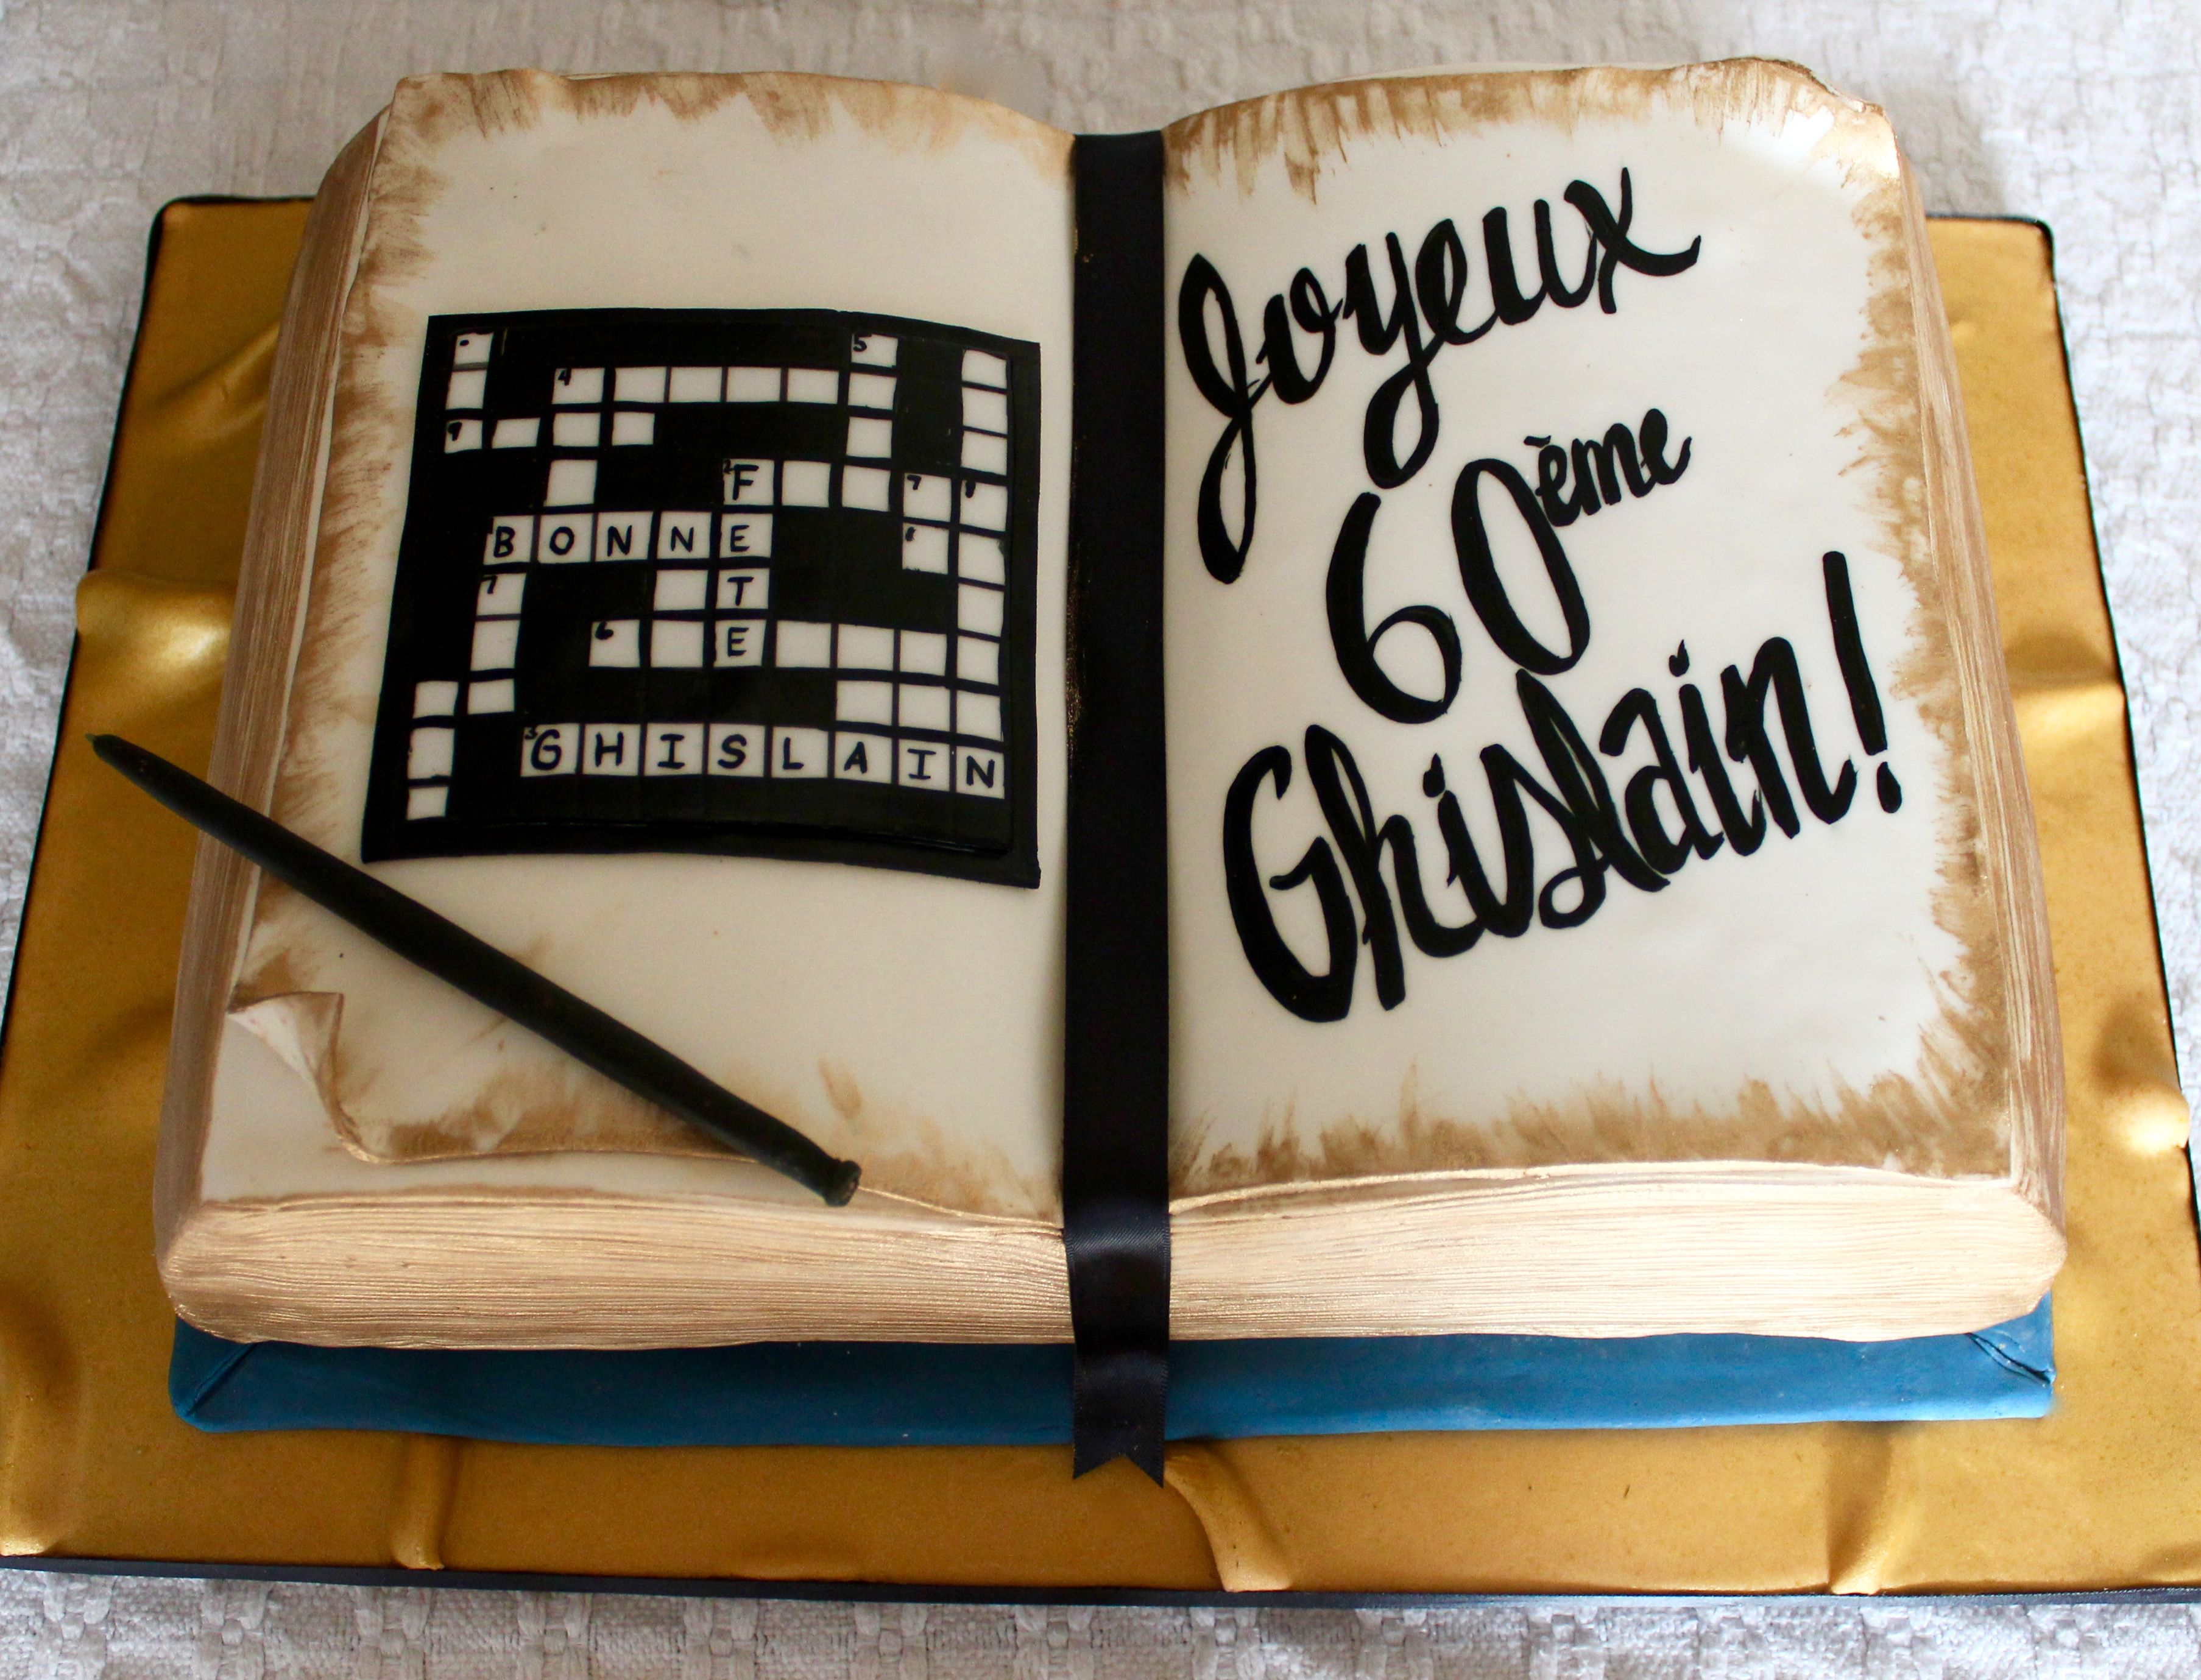 Crossword puzzle cake for writer book lover themed cake